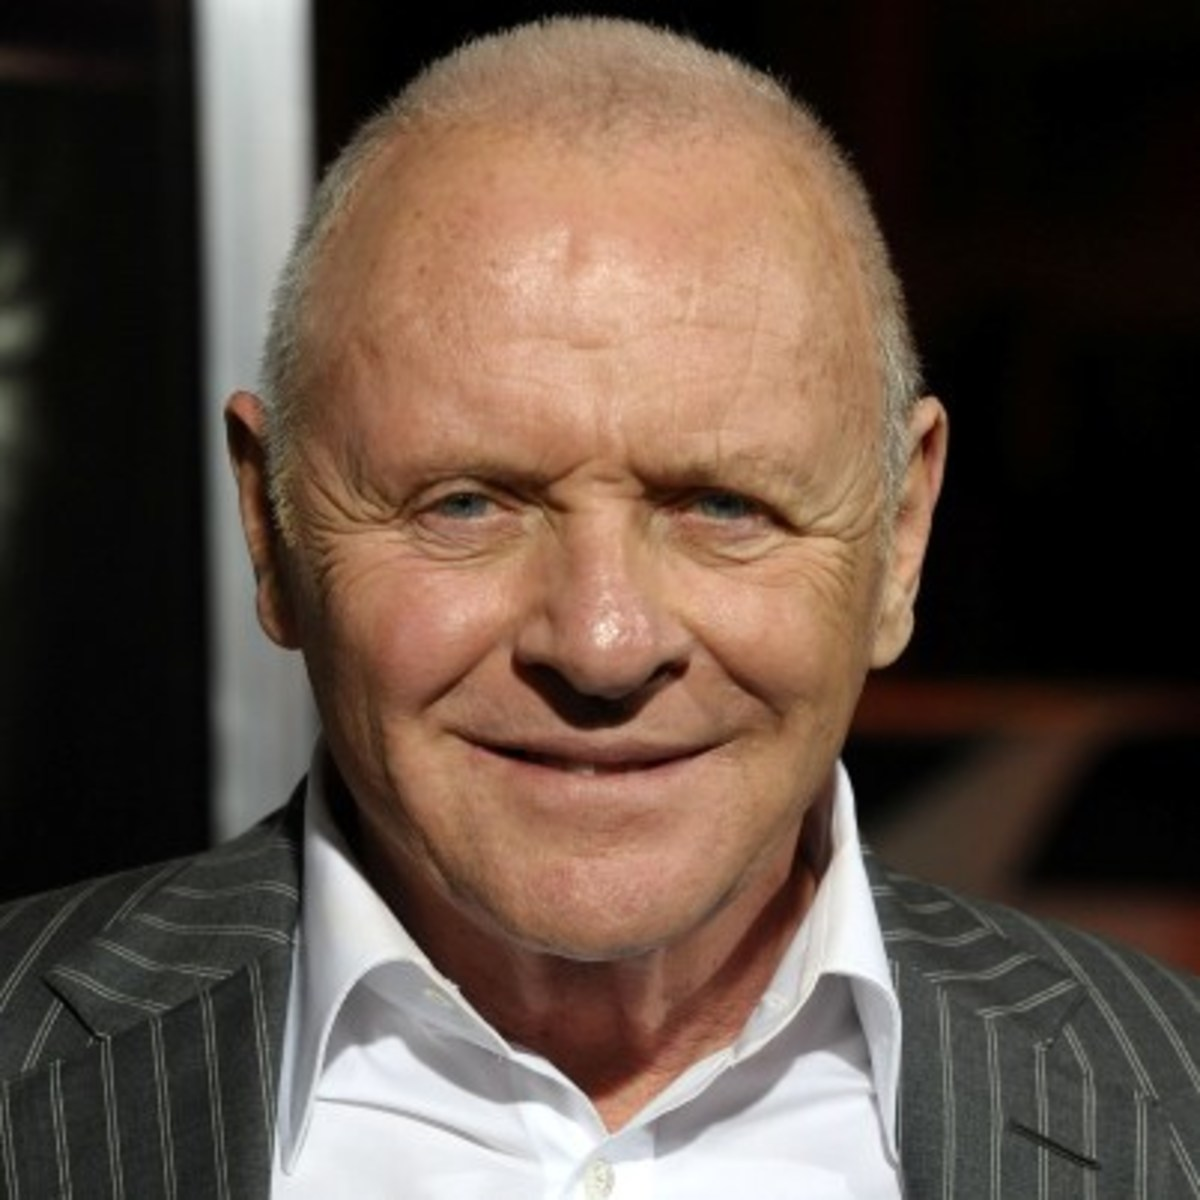 Anthony Hopkins (born 1937 (naturalized American citizen)